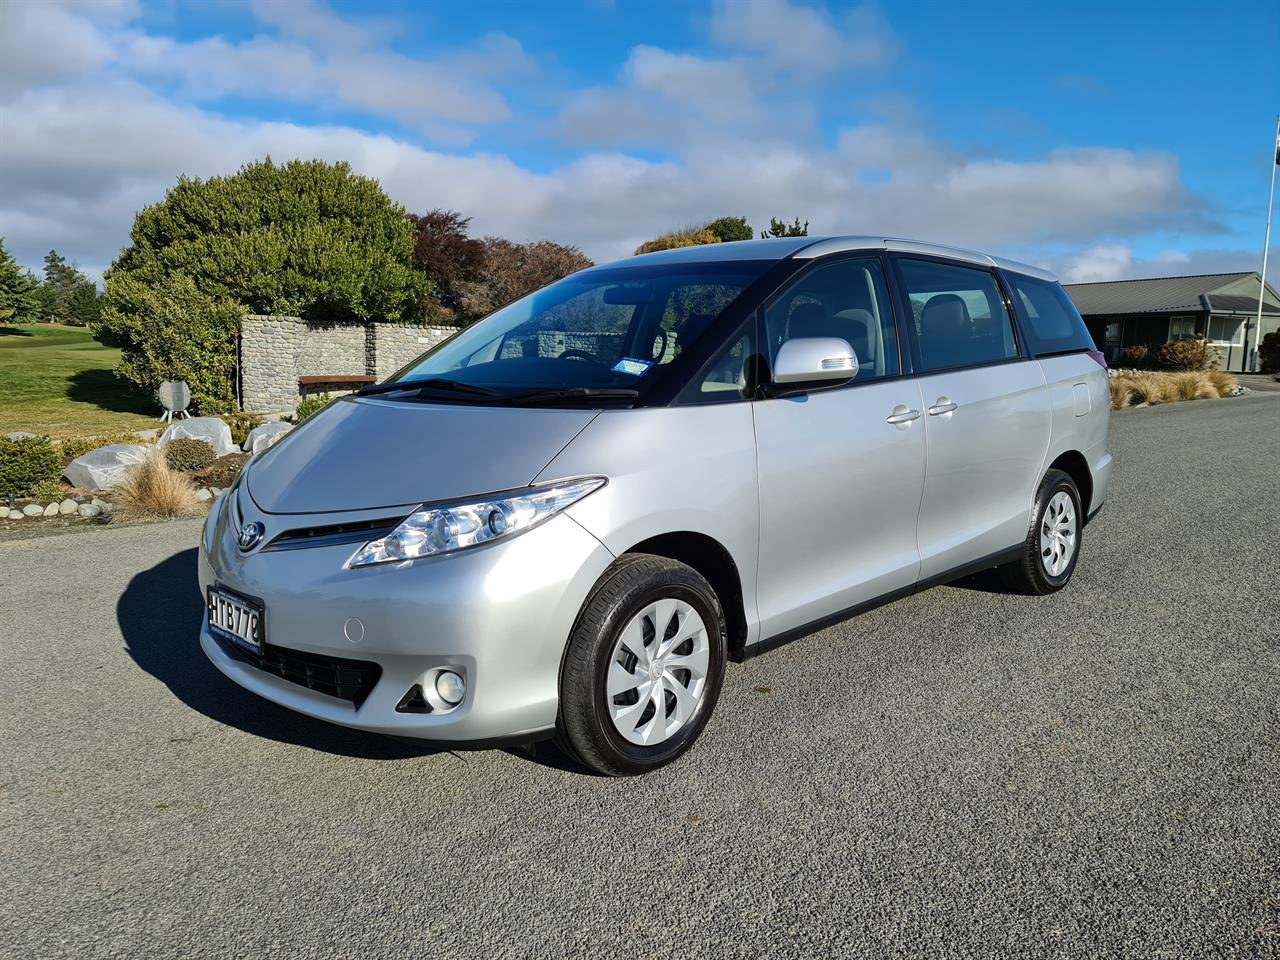 image-2, 2014 Toyota Previa 2.4P NPV CVT at Christchurch